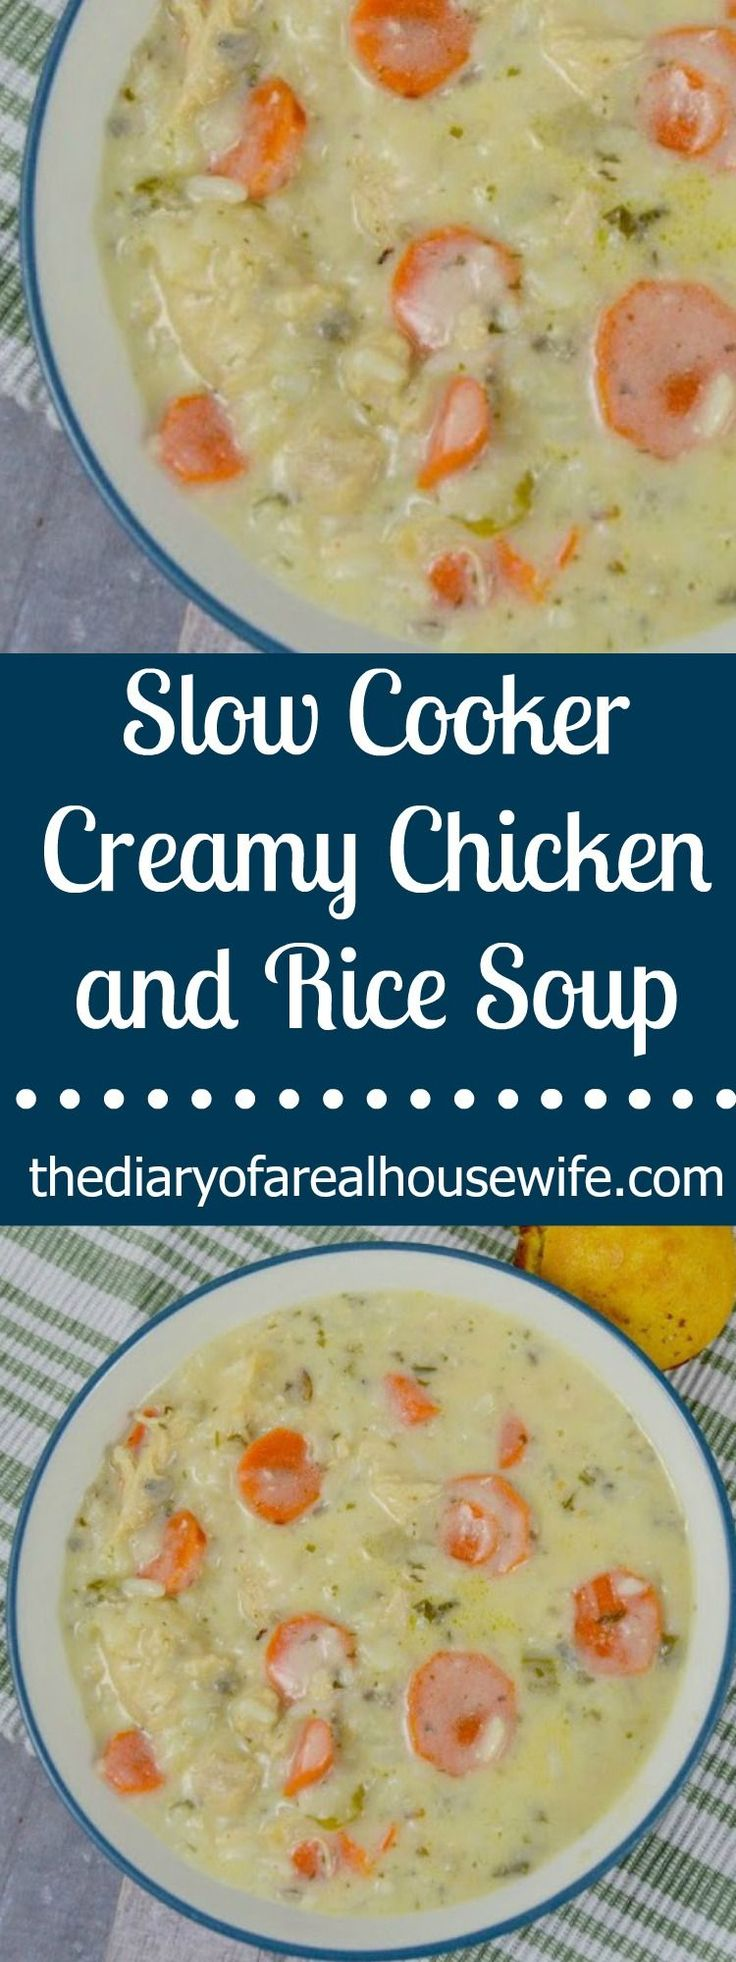 Slow Cooker Creamy Chicken and Rice Soup - Just made this adding a little more cracked pepper and bay leaves for more flavor.  It was DELICIOUS.  Inexpensive to make, and tasted rich and creamy even though I just used skim milk with the flour.  This will be a go-to for winter!  Next time I might add green beans for a little more veg.